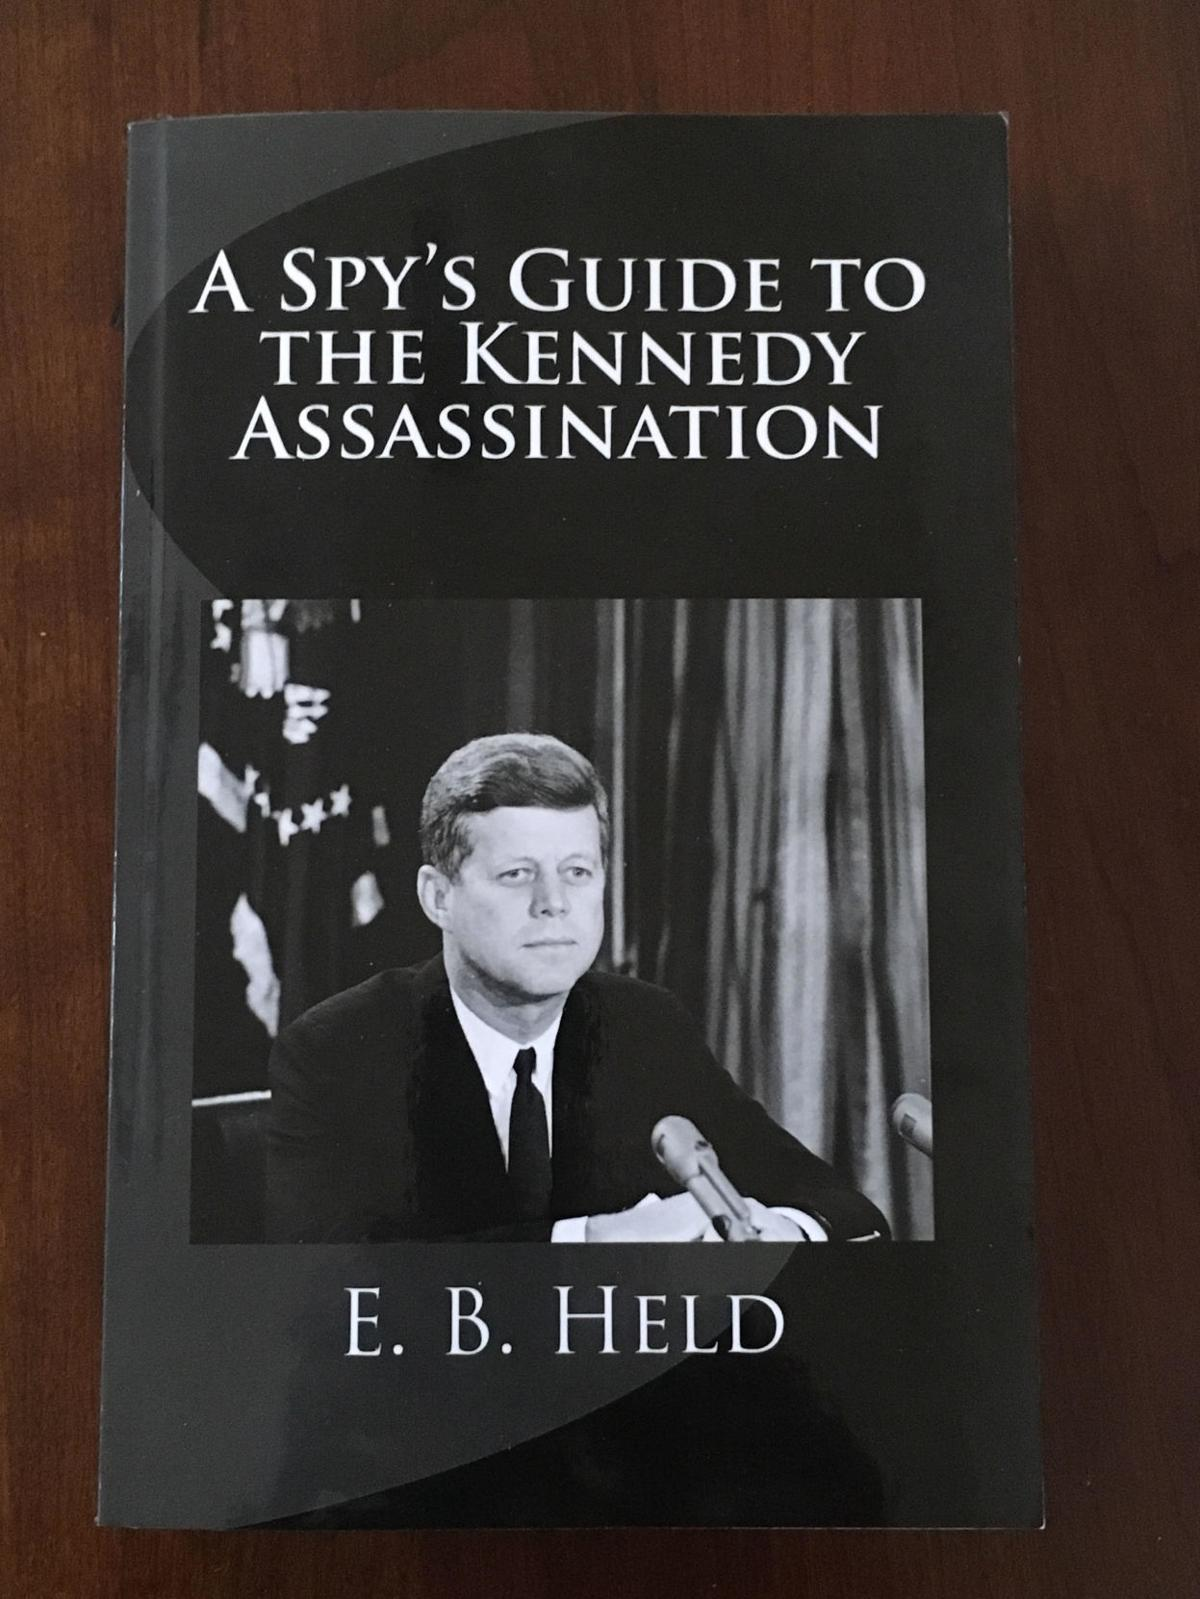 'A Spy's Guide To The Kennedy Assassination'